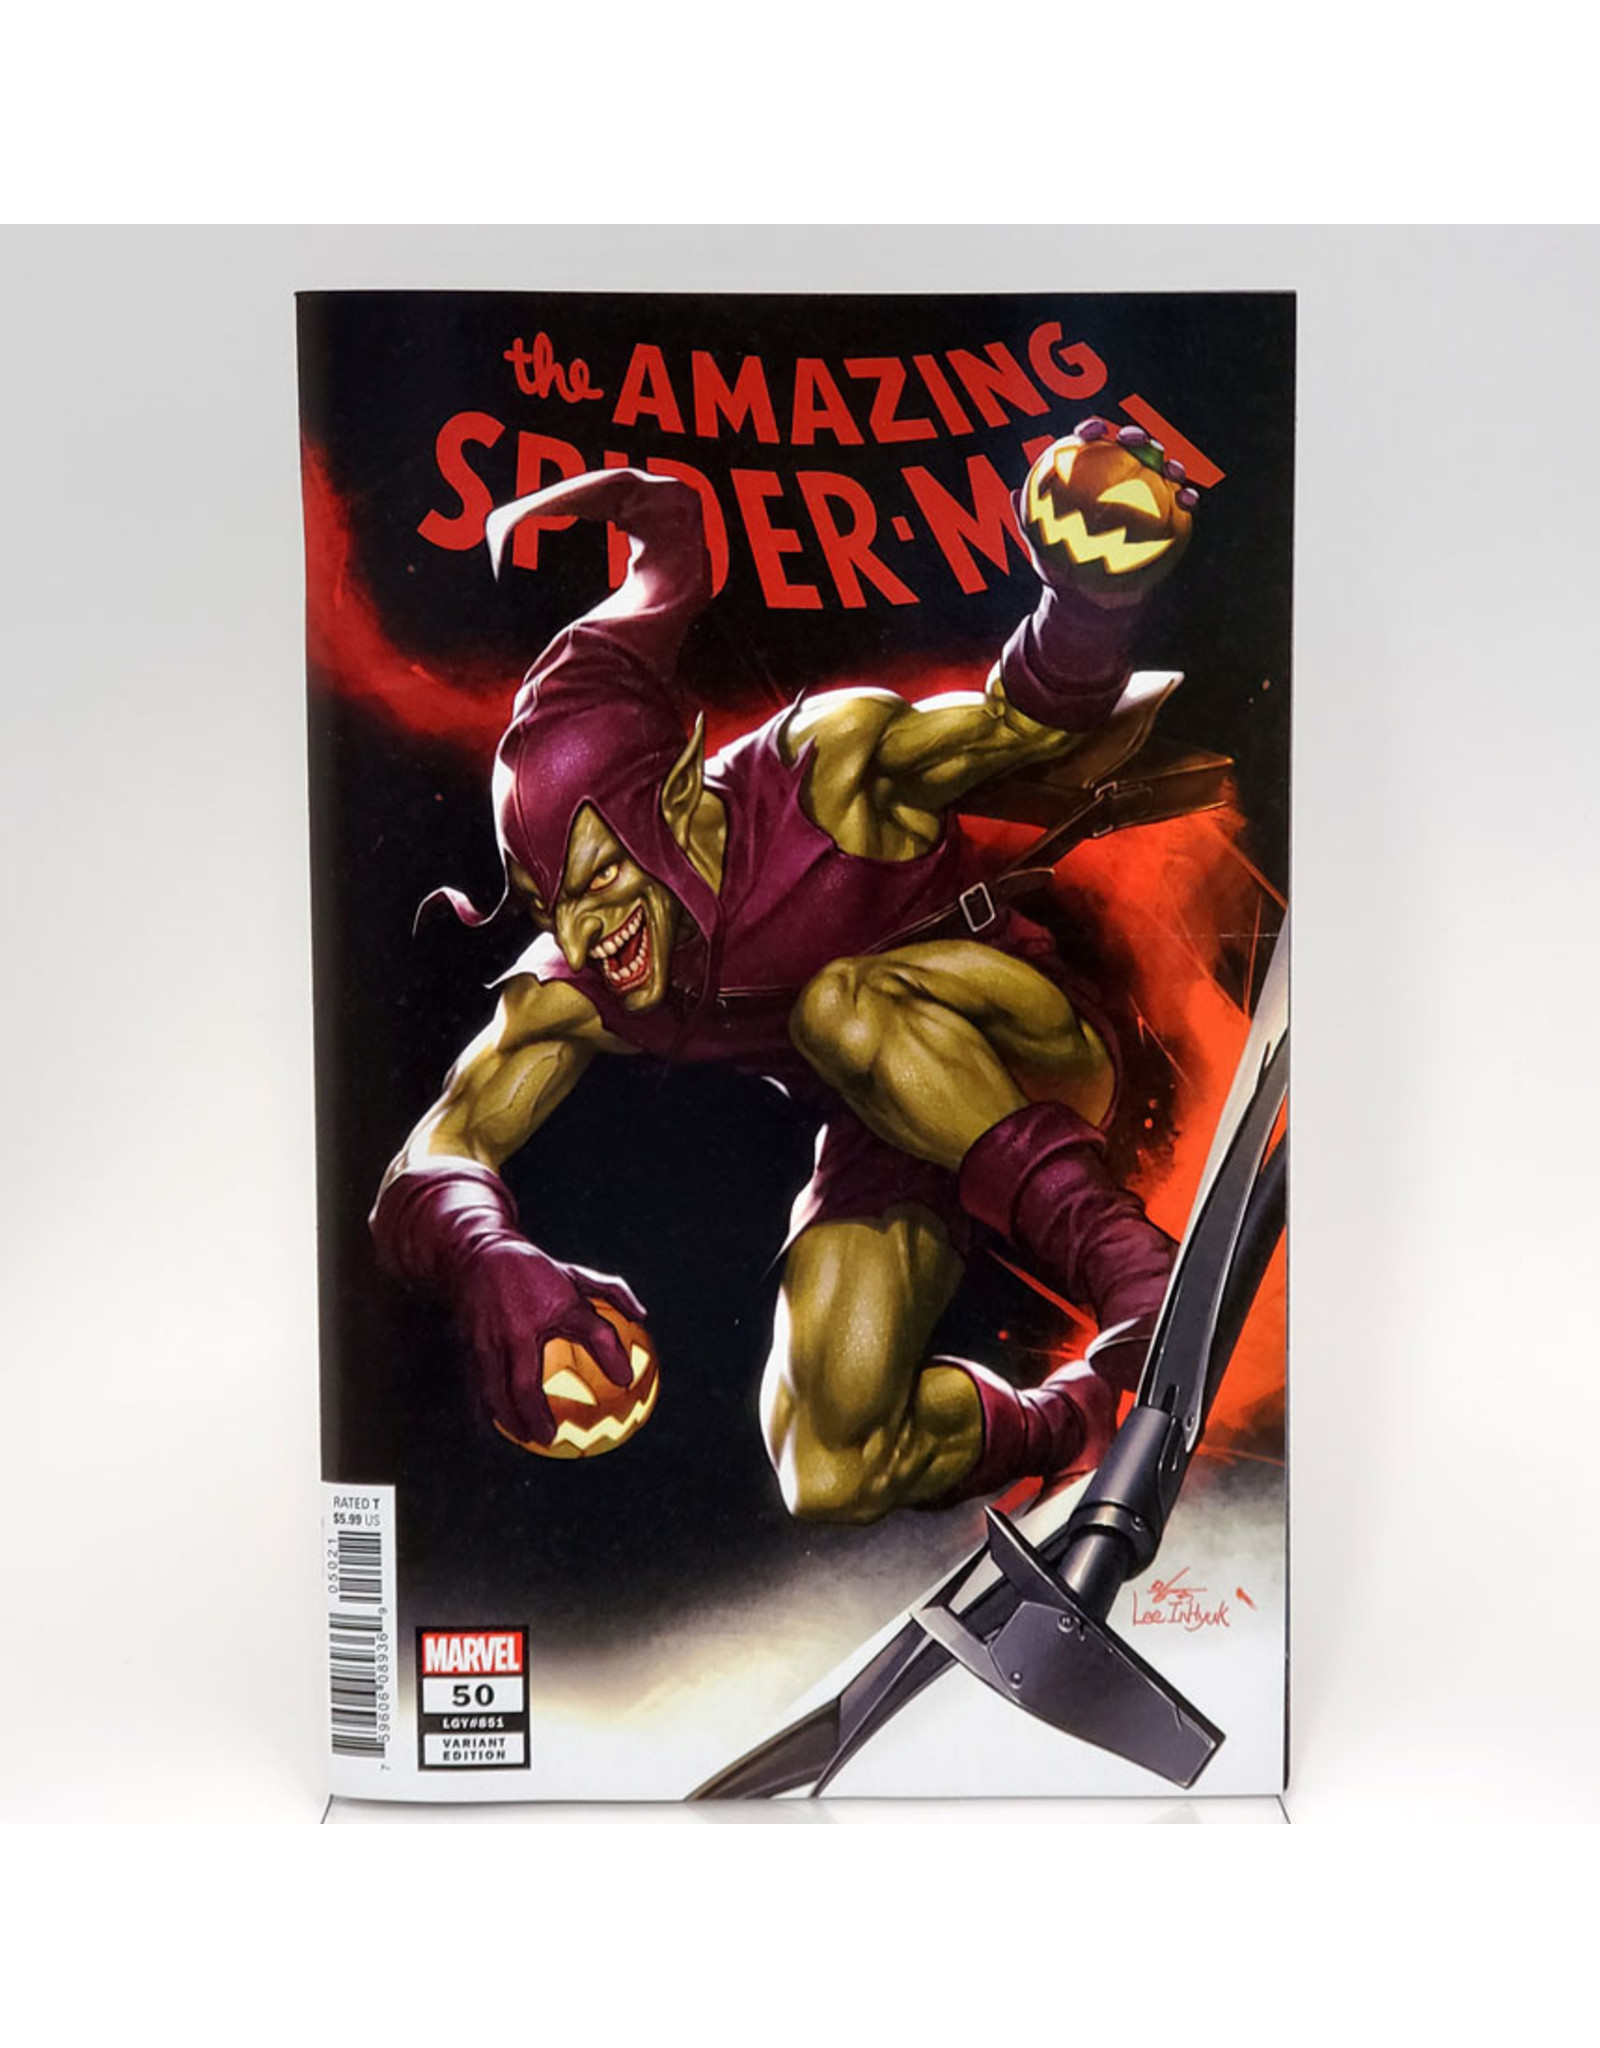 MARVEL COMICS AMAZING SPIDER-MAN #50 1:25 INHYUK LEE VARIANT